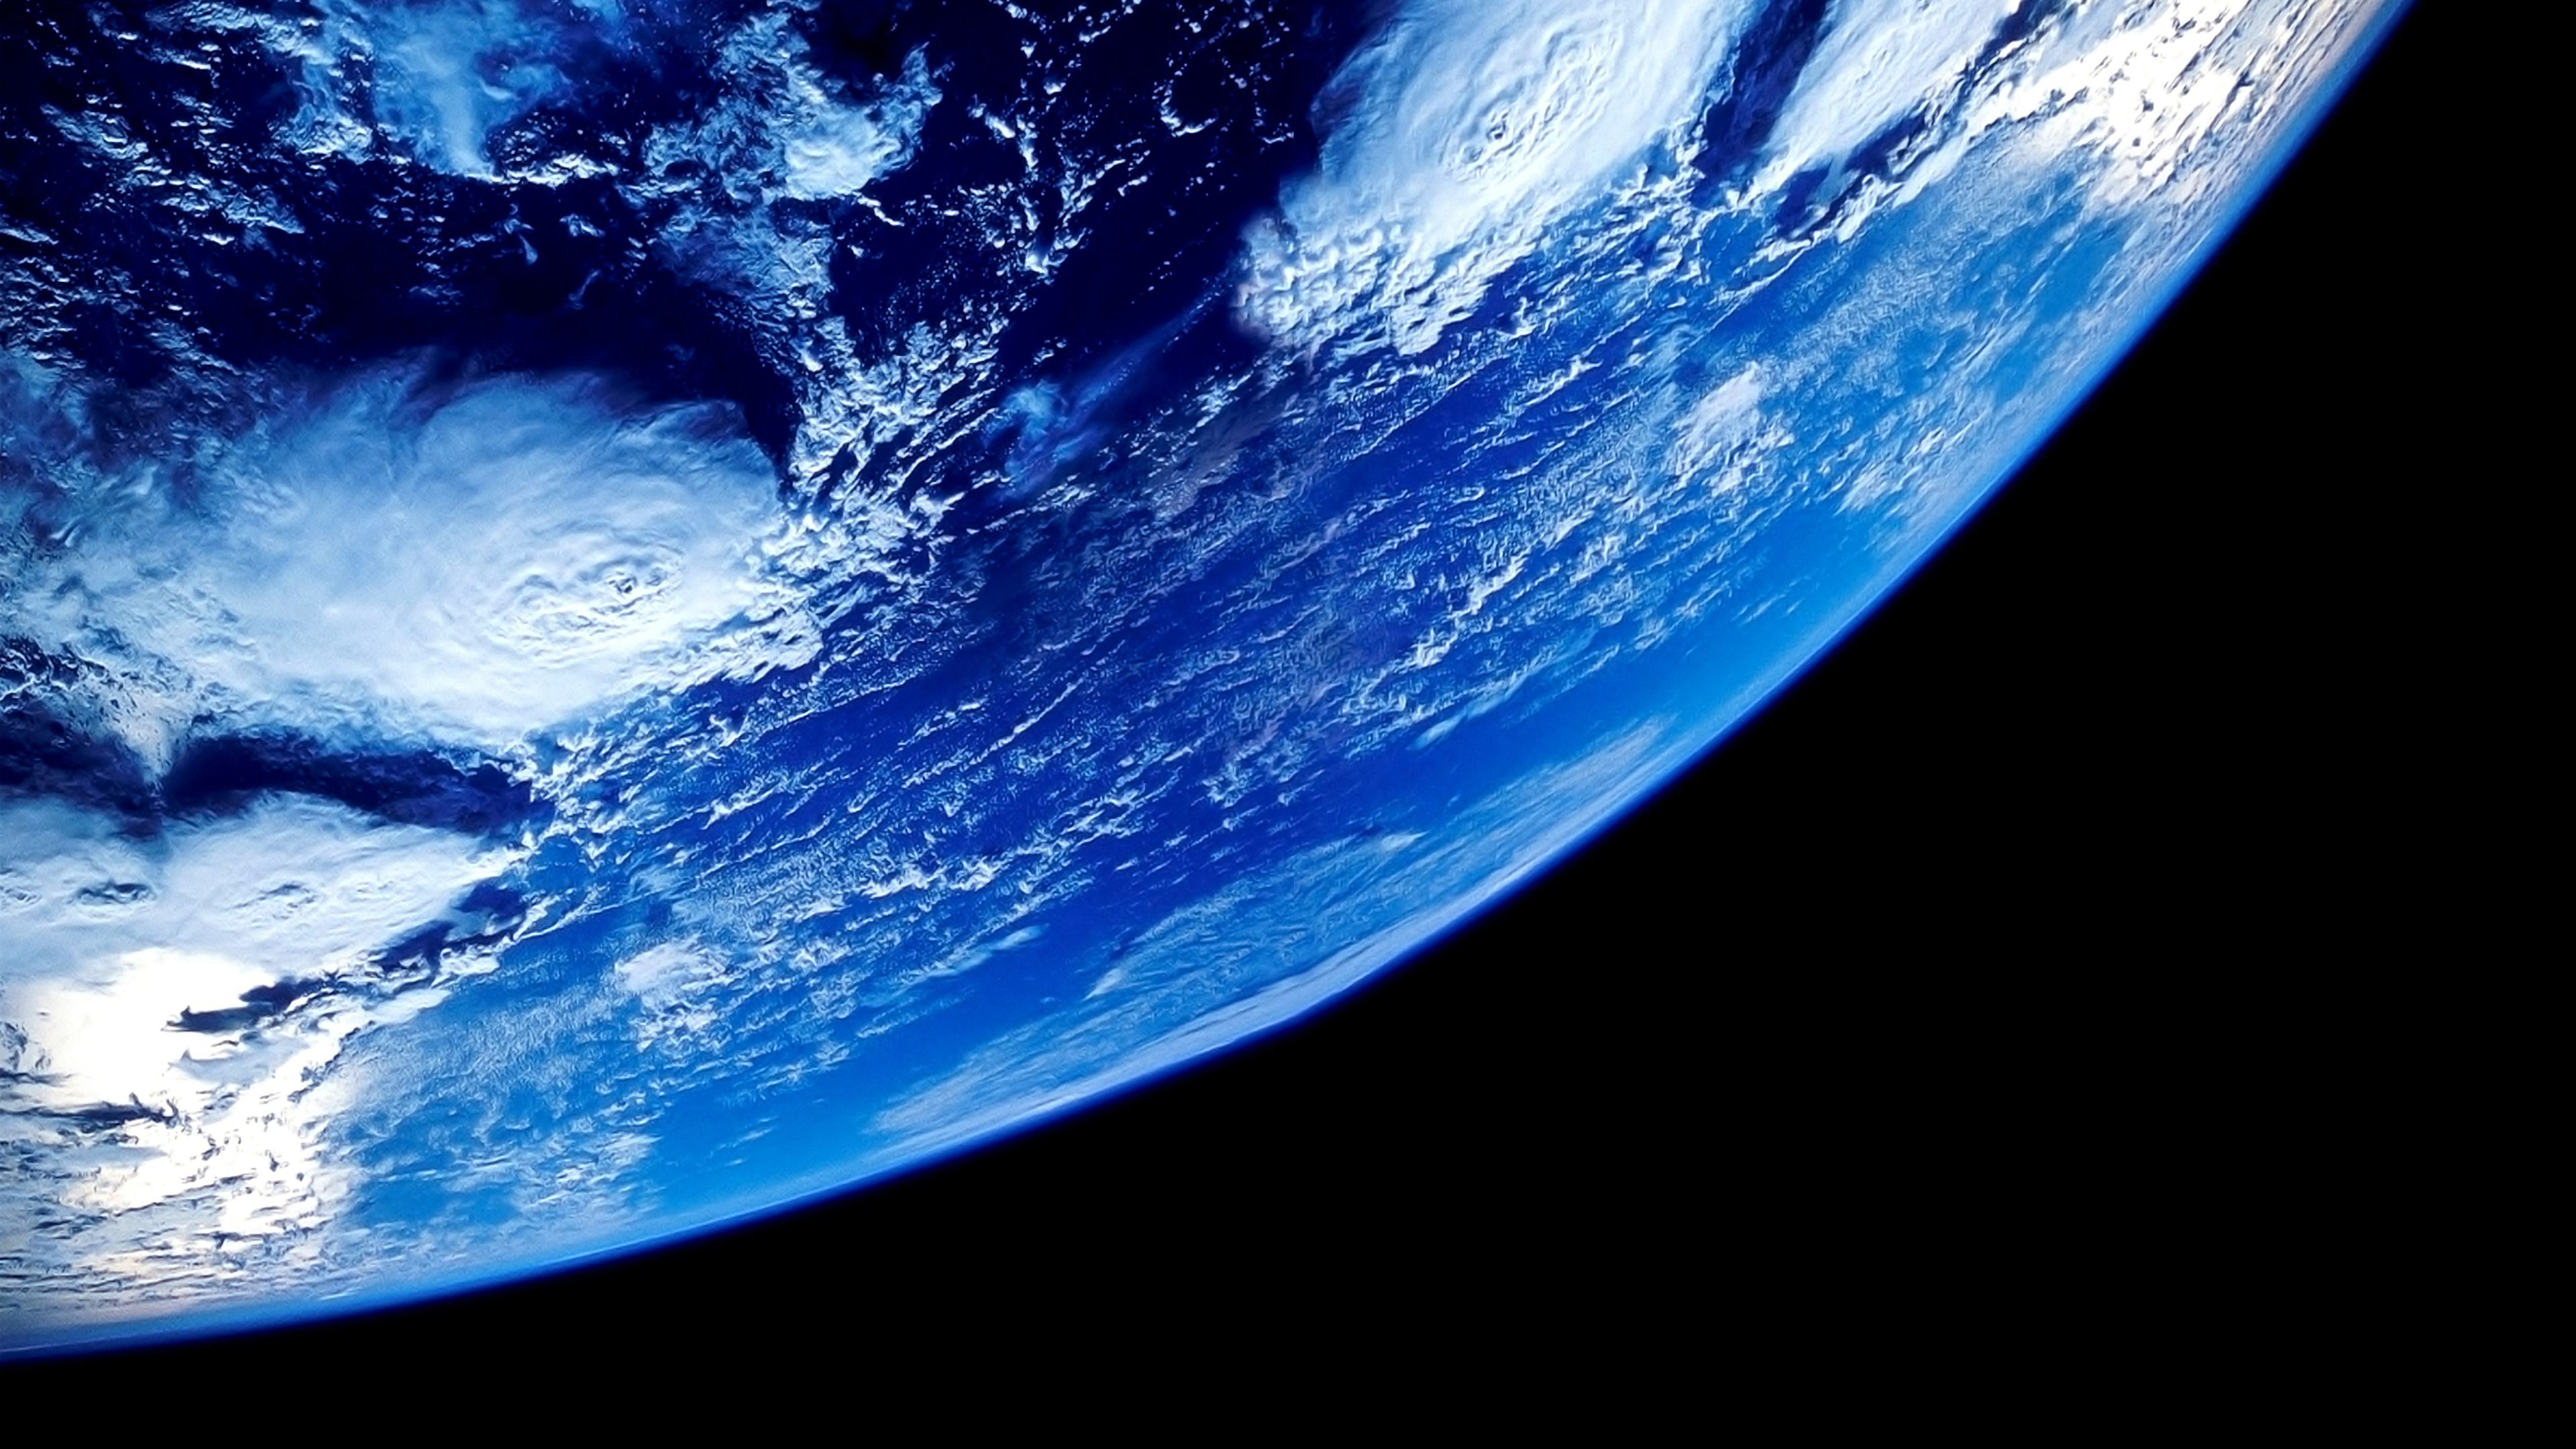 Earth From Space Wallpaper 4k Ultra Hd Id2981